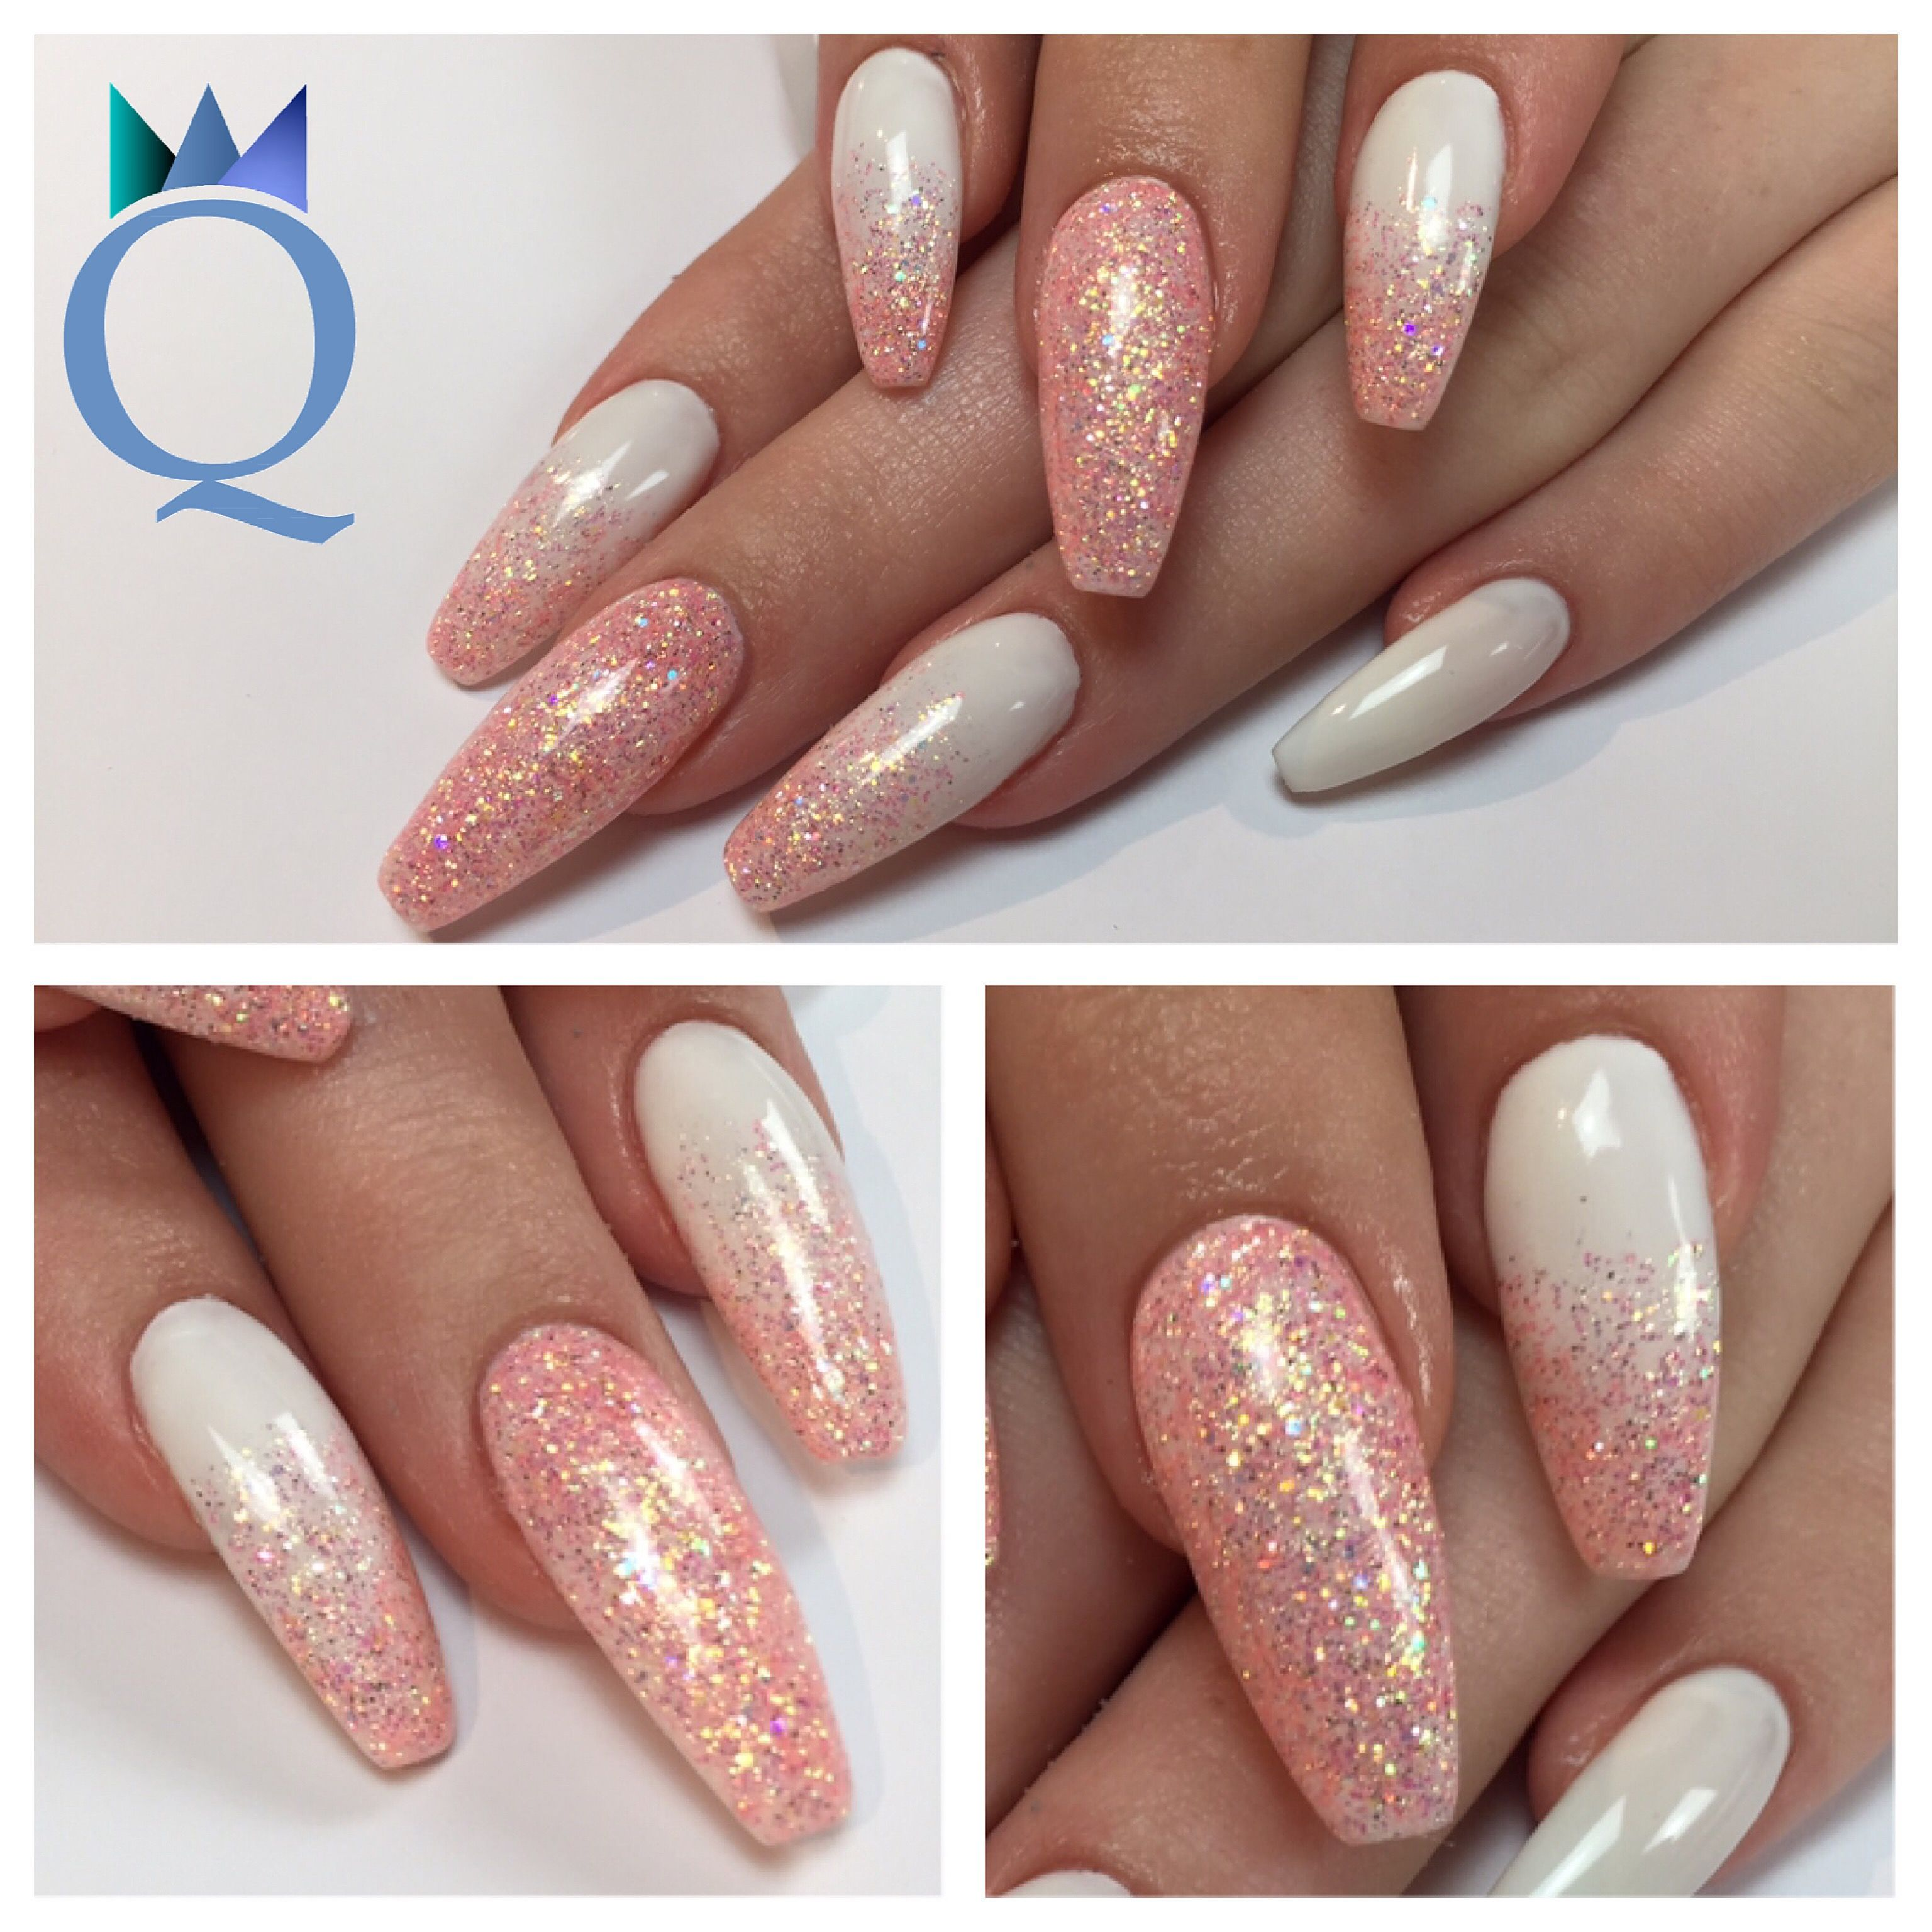 Nageldesign Weiß Rosa Coffinnails Ballerinashape Gelnails Nails White Yvesswiss